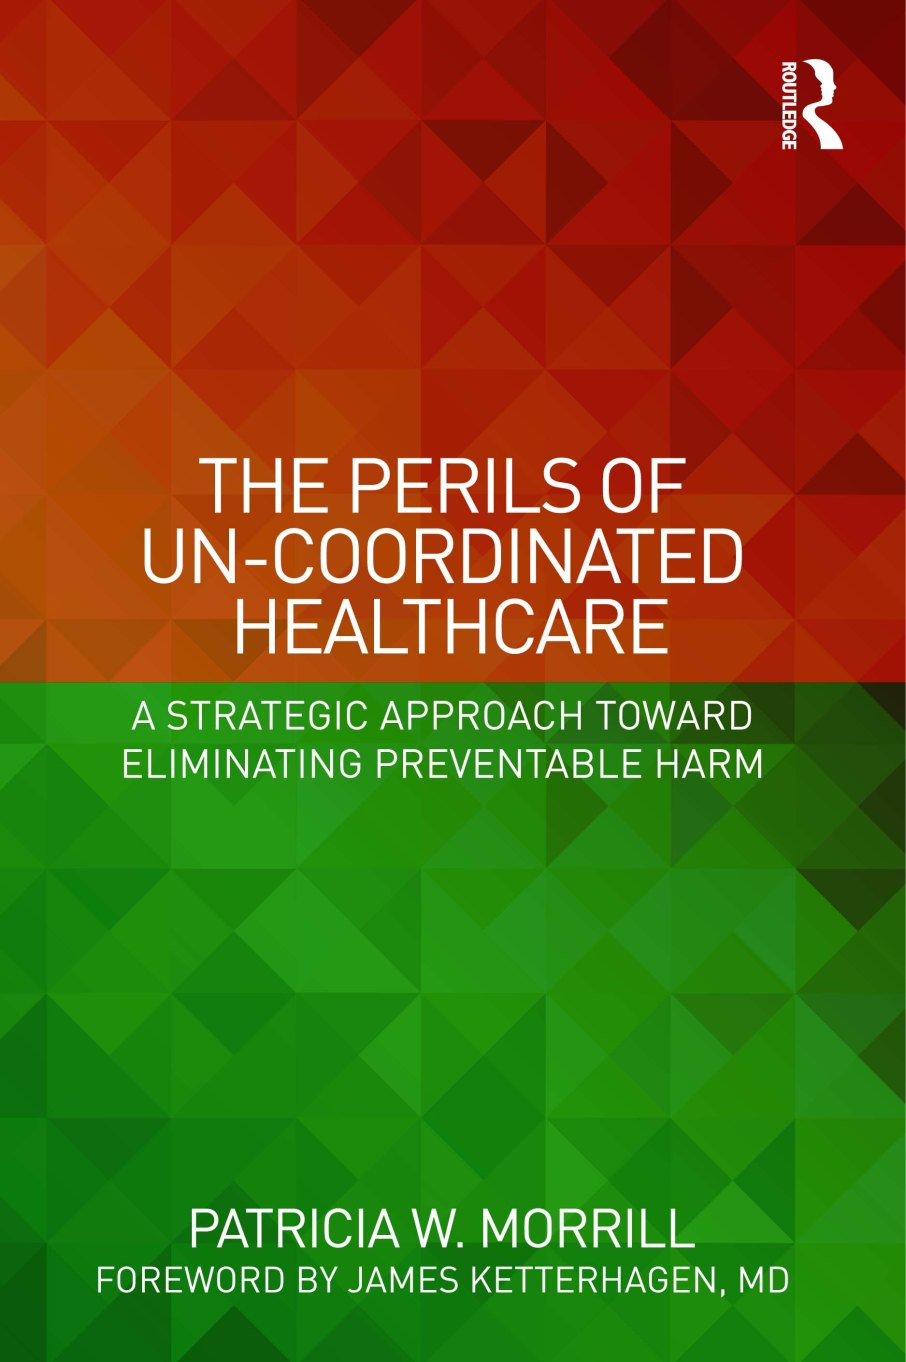 Patricia Morrill-The Perils of Uncoordinated Healthcare front cover